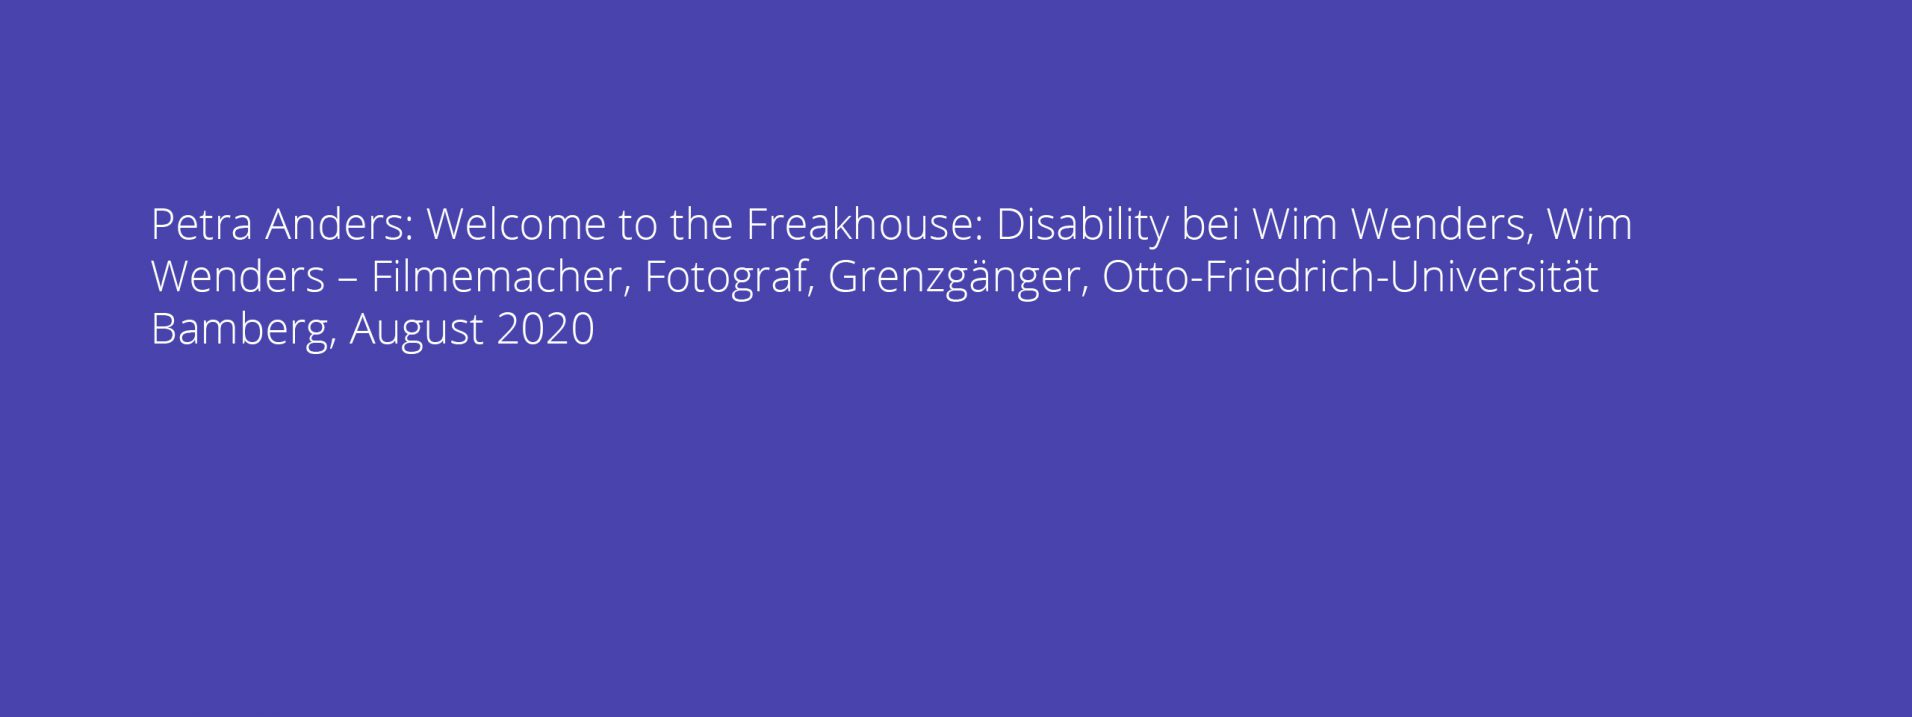 Petra Anders: Welcome to the Freakhouse: Disability bei Wim Wenders, Wim Wenders – Filmemacher, Fotograf, Grenzgänger, Otto-Friedrich-Universität Bamberg, August 2020